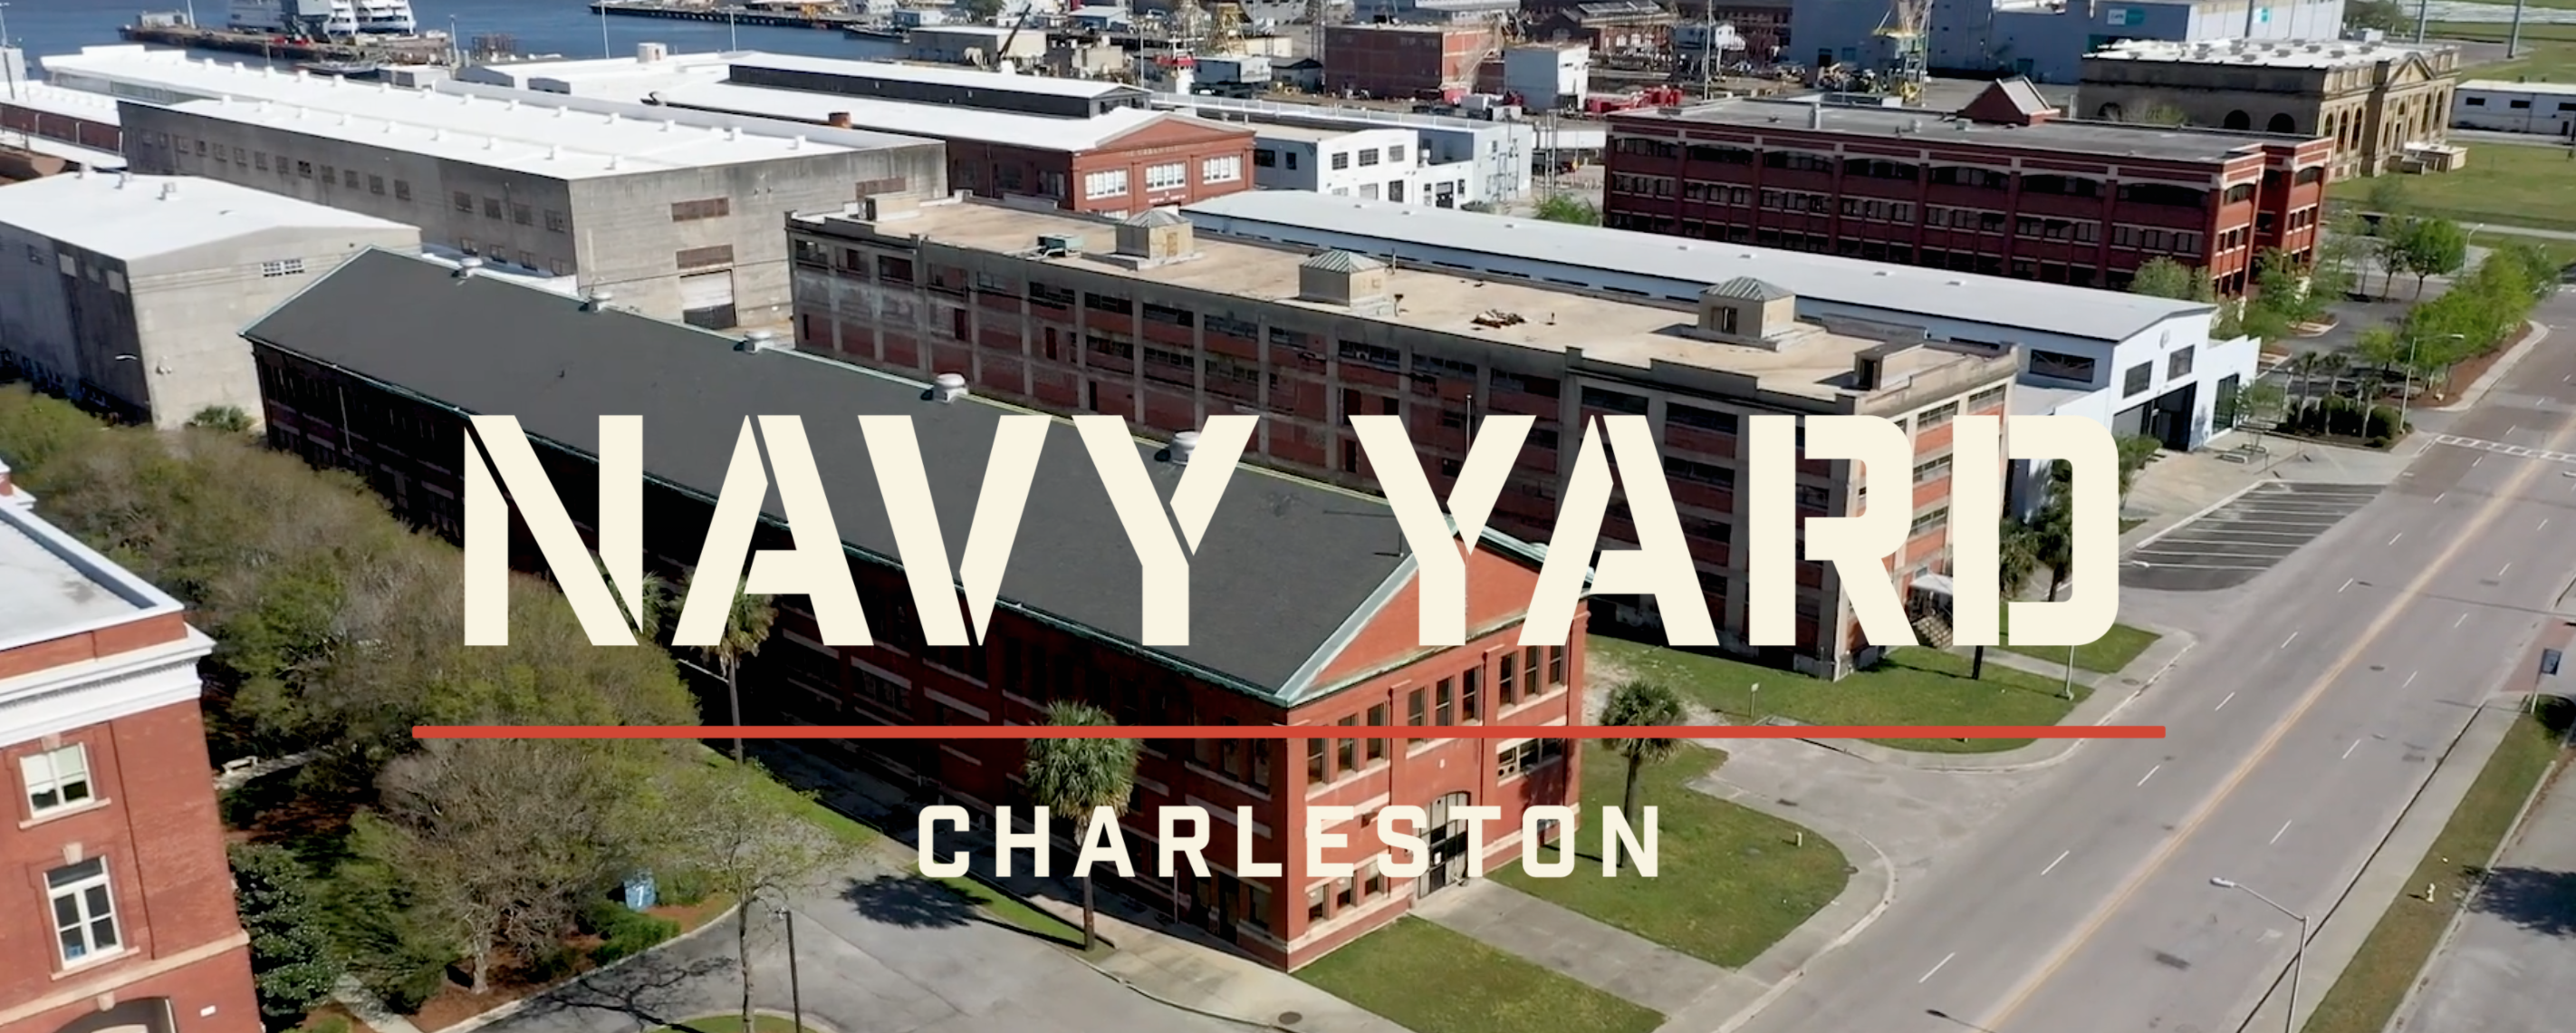 Navy Yard Charleston - Real Deal with Neil